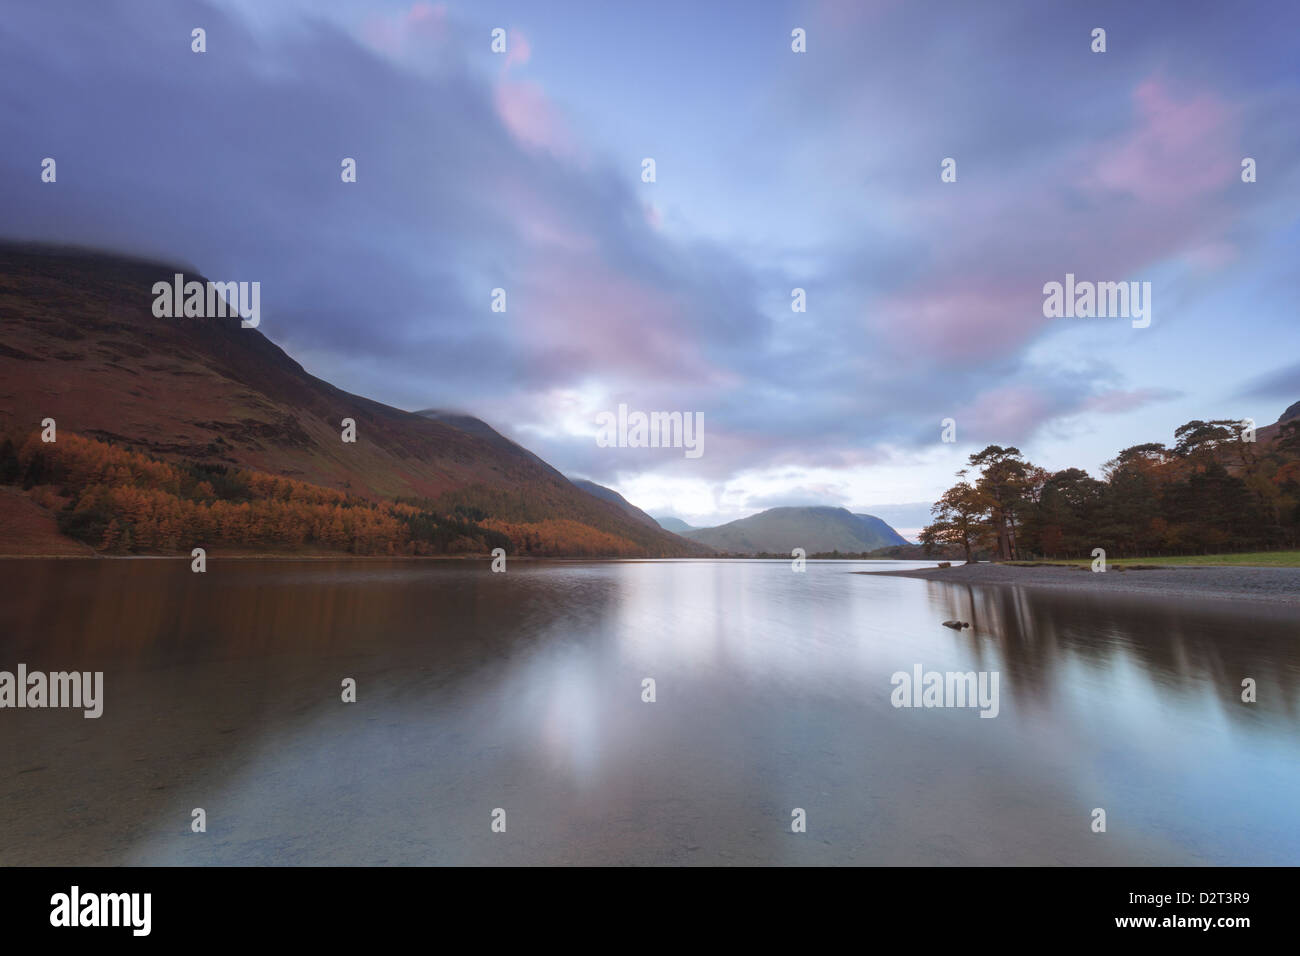 Buttermere au crépuscule, Parc National de Lake District, Cumbria, Angleterre, Royaume-Uni, Europe Photo Stock